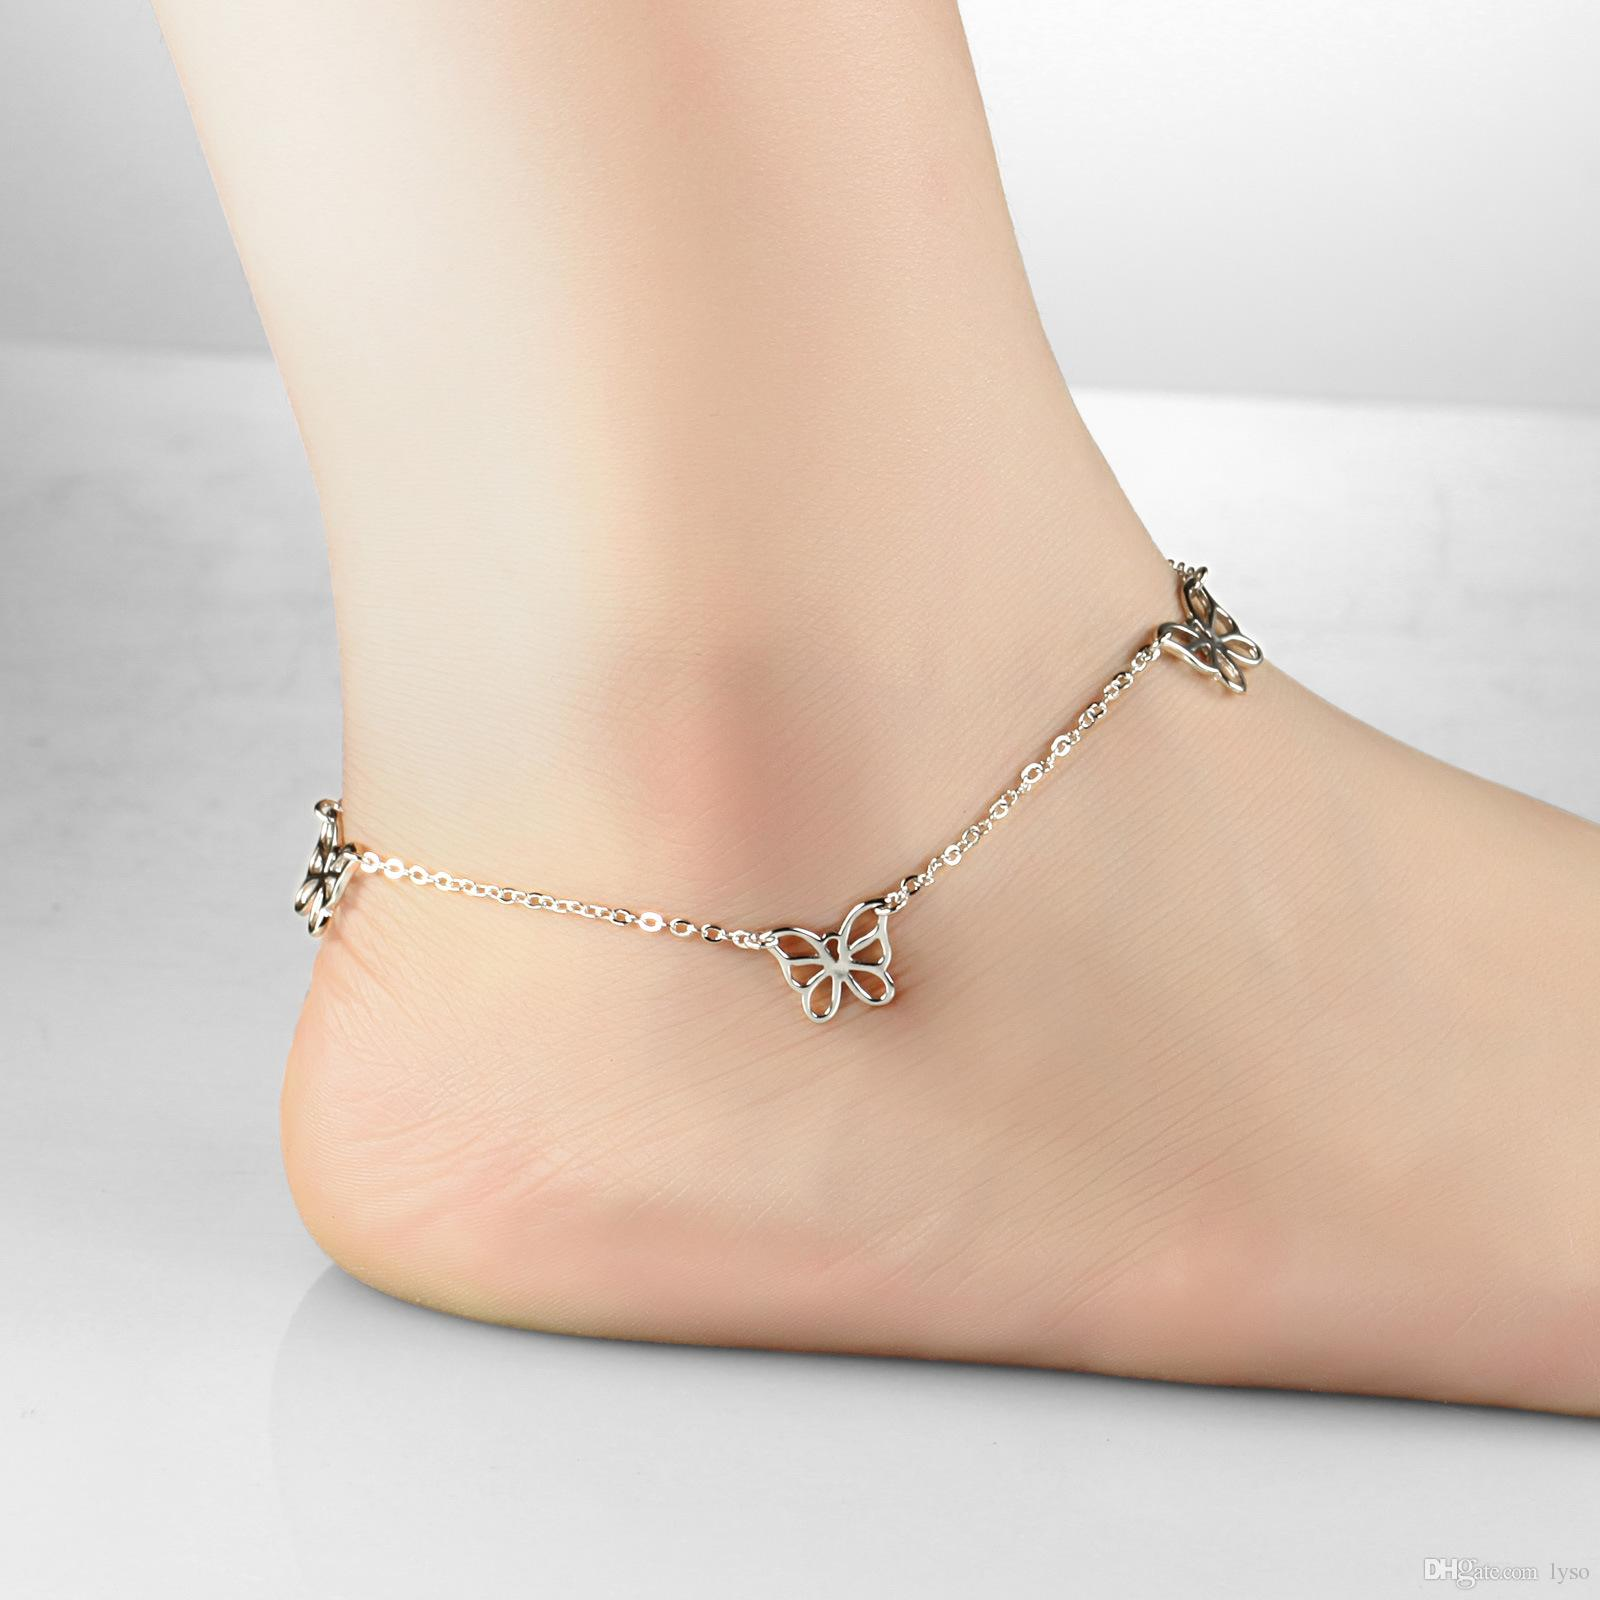 and women picture for tattoos anklet ankle bracelet best photo womens design bracelets idea men tattoo